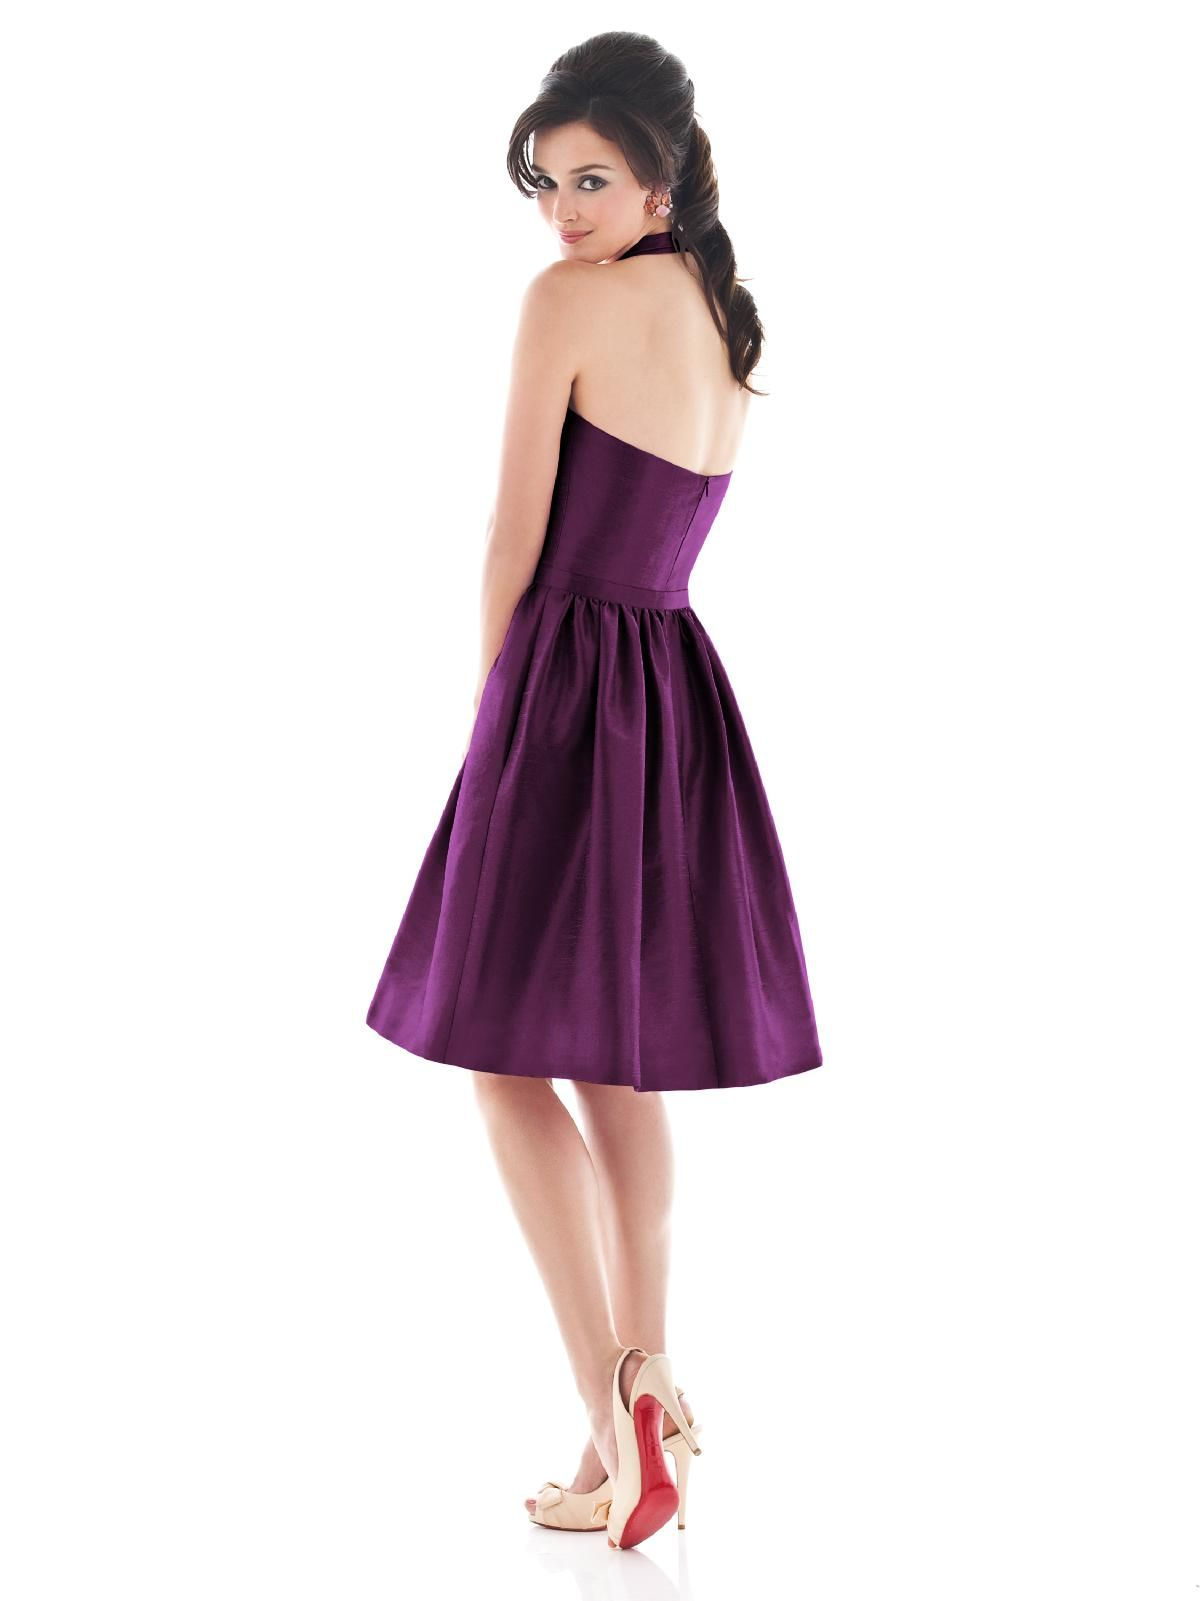 Alfred sung style d482 bridesmaid pinterest alfred sung the alfred sung bridesmaid collection offers fresh contemporary bridesmaid dresses while keeping your budget in mind ombrellifo Image collections